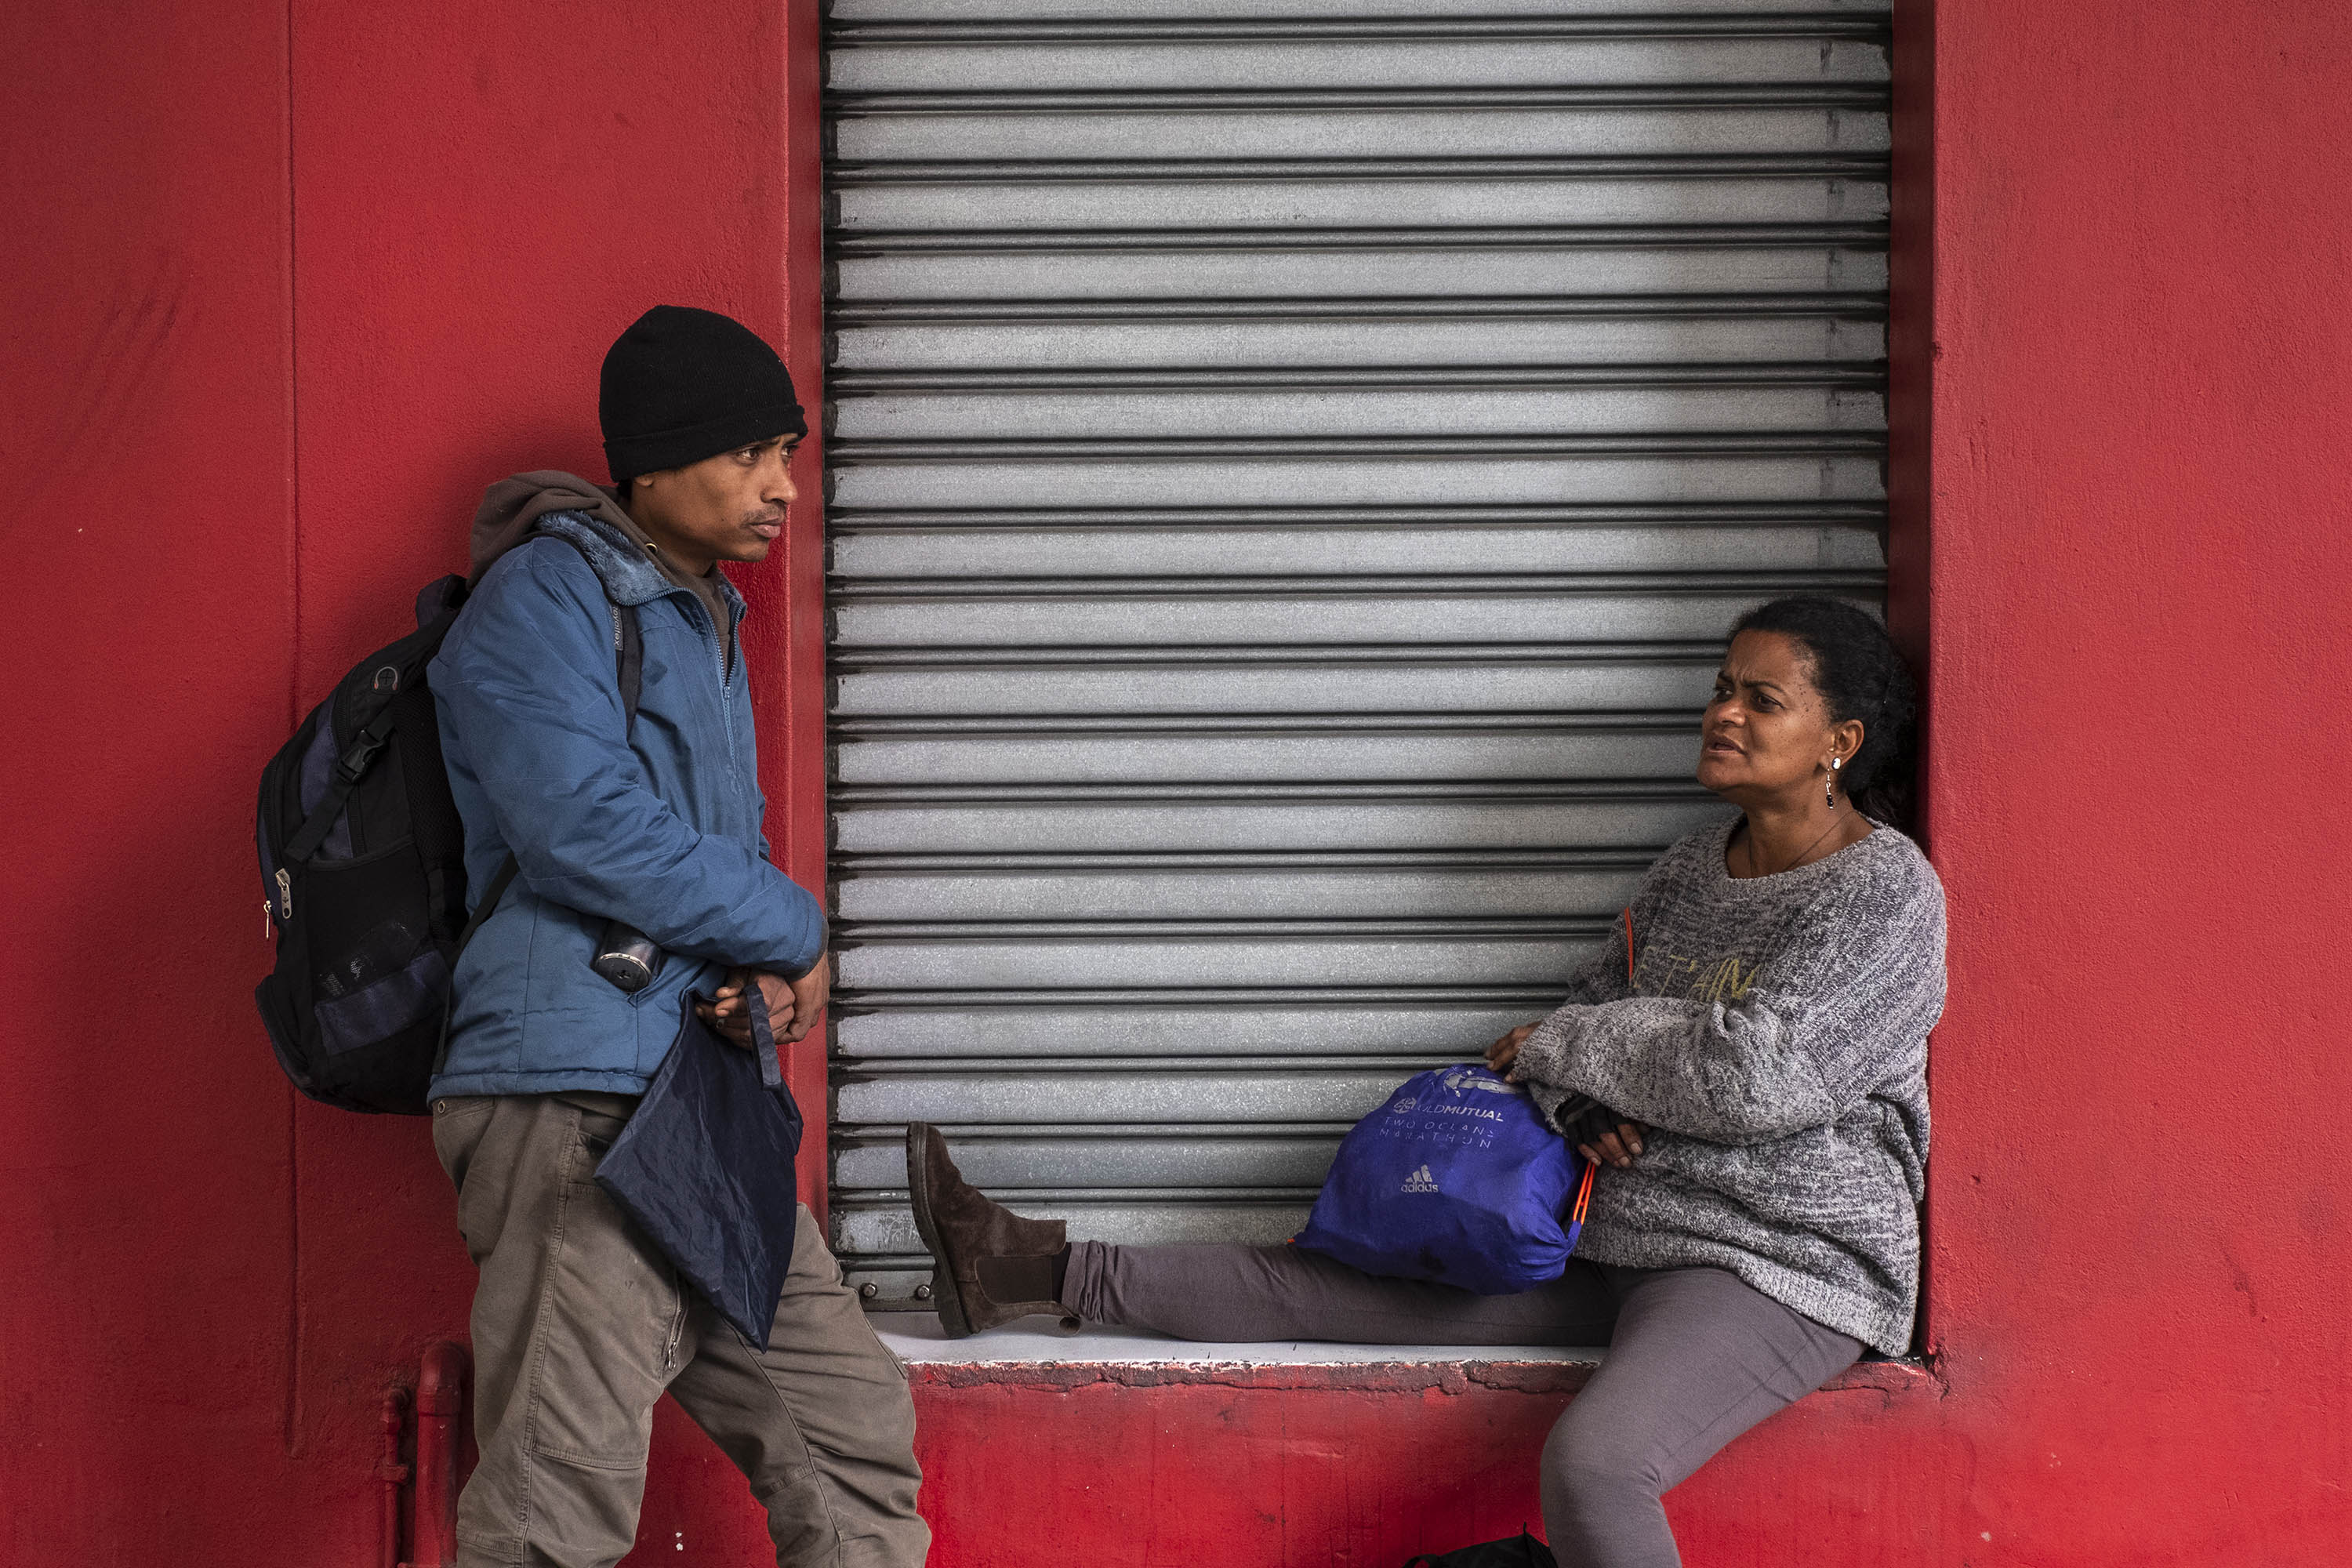 28 August 2019: 'The cops are the people who believe we have no rights at all,' says Carin Gelderbloem (right), pictured here with partner Rameez Kemp in Roeland Street, Cape Town.